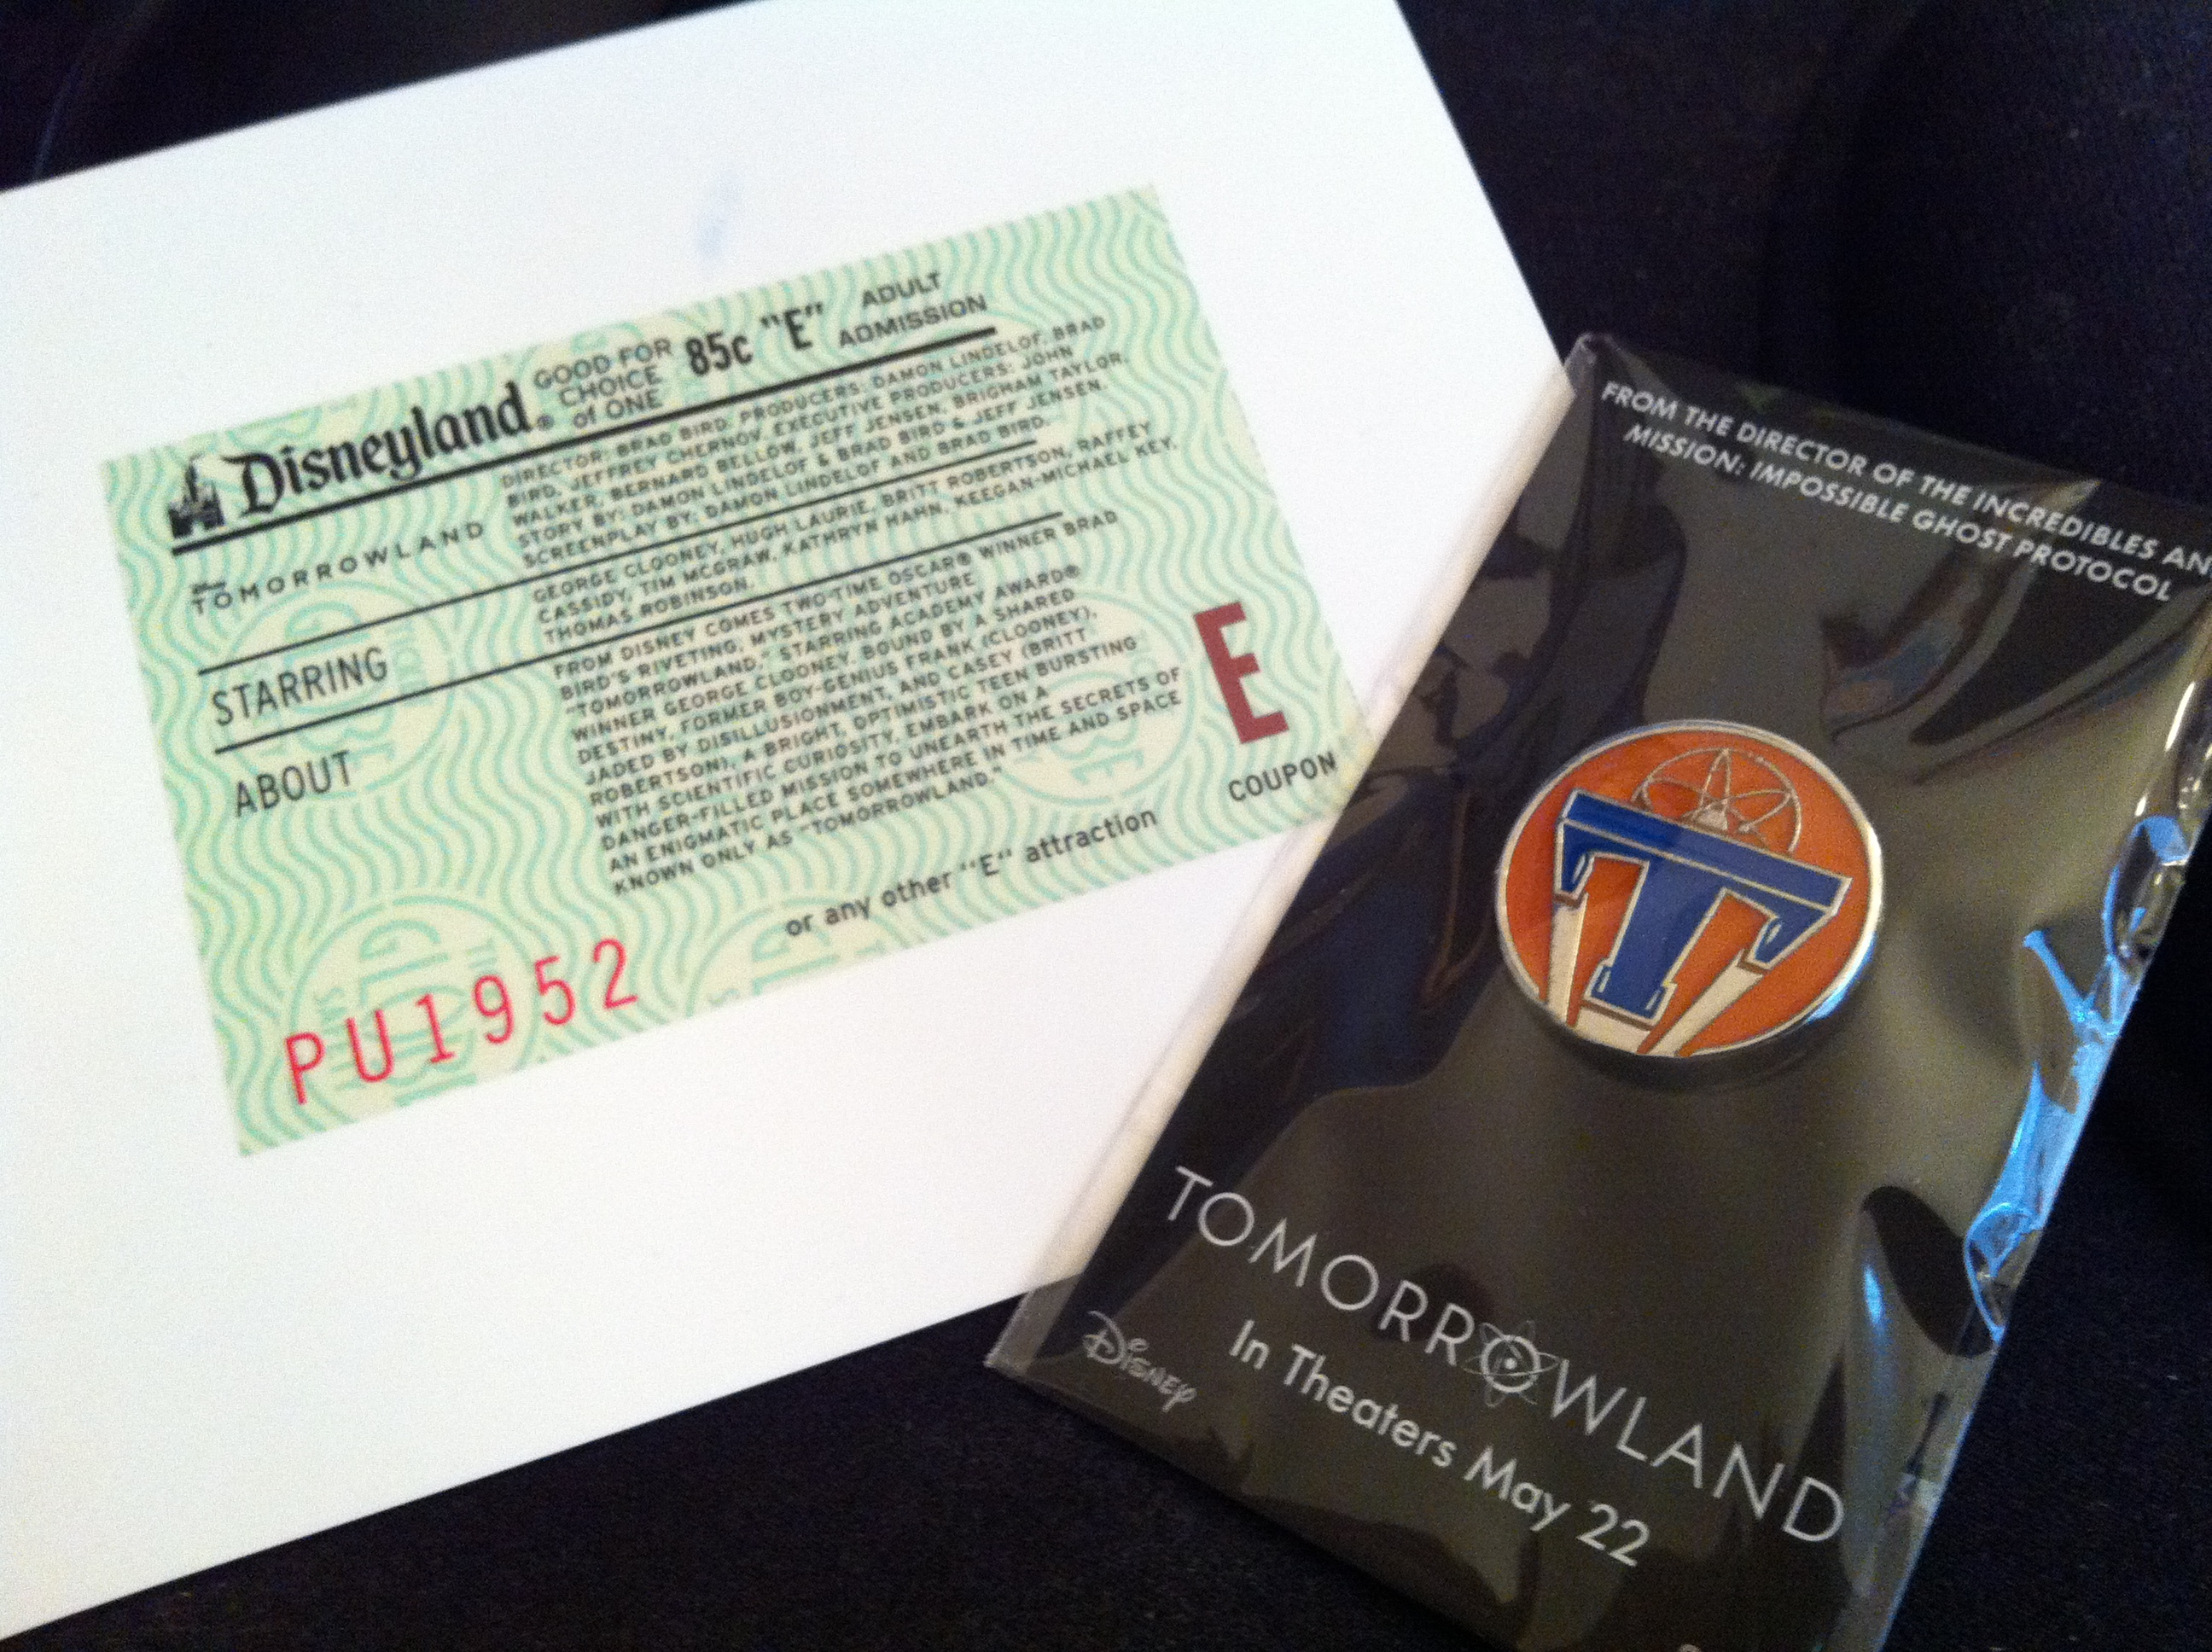 Tomorrowland Tickets 3 Stars Alicia Stella 39s Blogosaurus